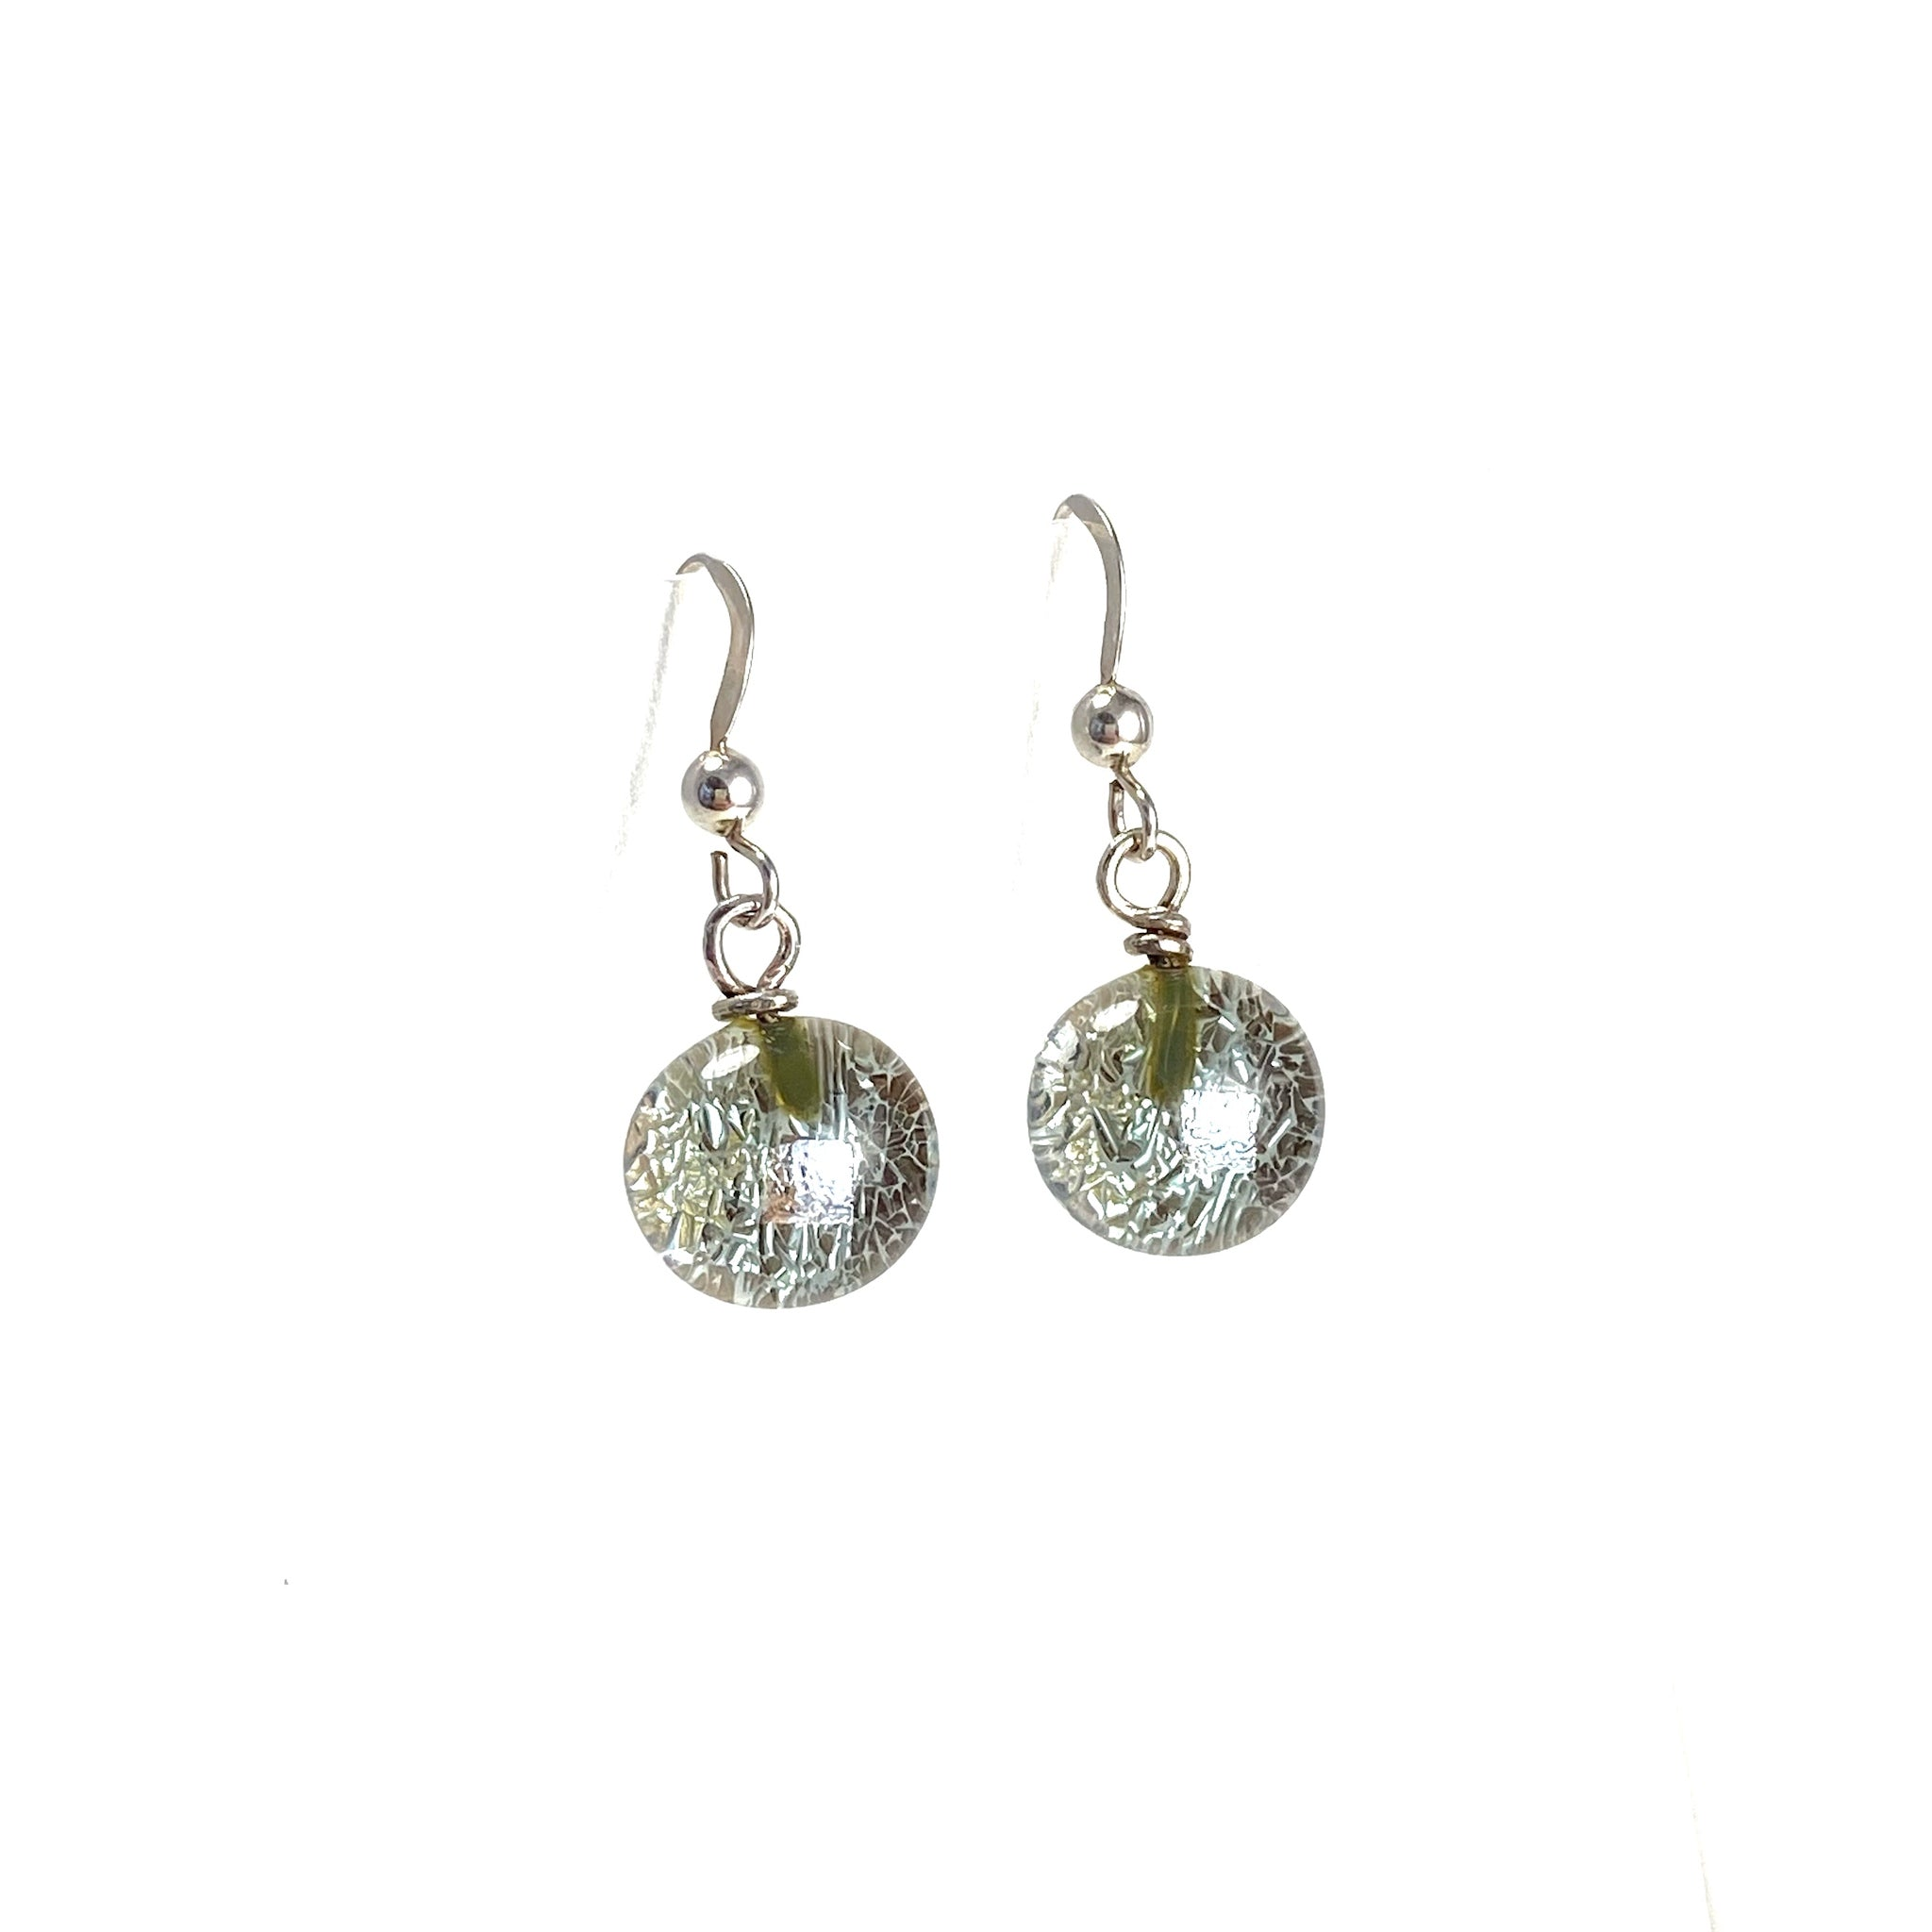 gray, space balls, sparkle, glass drops, earrings, fused glass, glass jewelry, glass and silver jewelry, handmade, handcrafted, American Craft, hand fabricated jewelry, hand fabricated jewellery, Athen, Georgia, colorful jewelry, sparkle, bullseye glass, dichroic glass, art jewelry